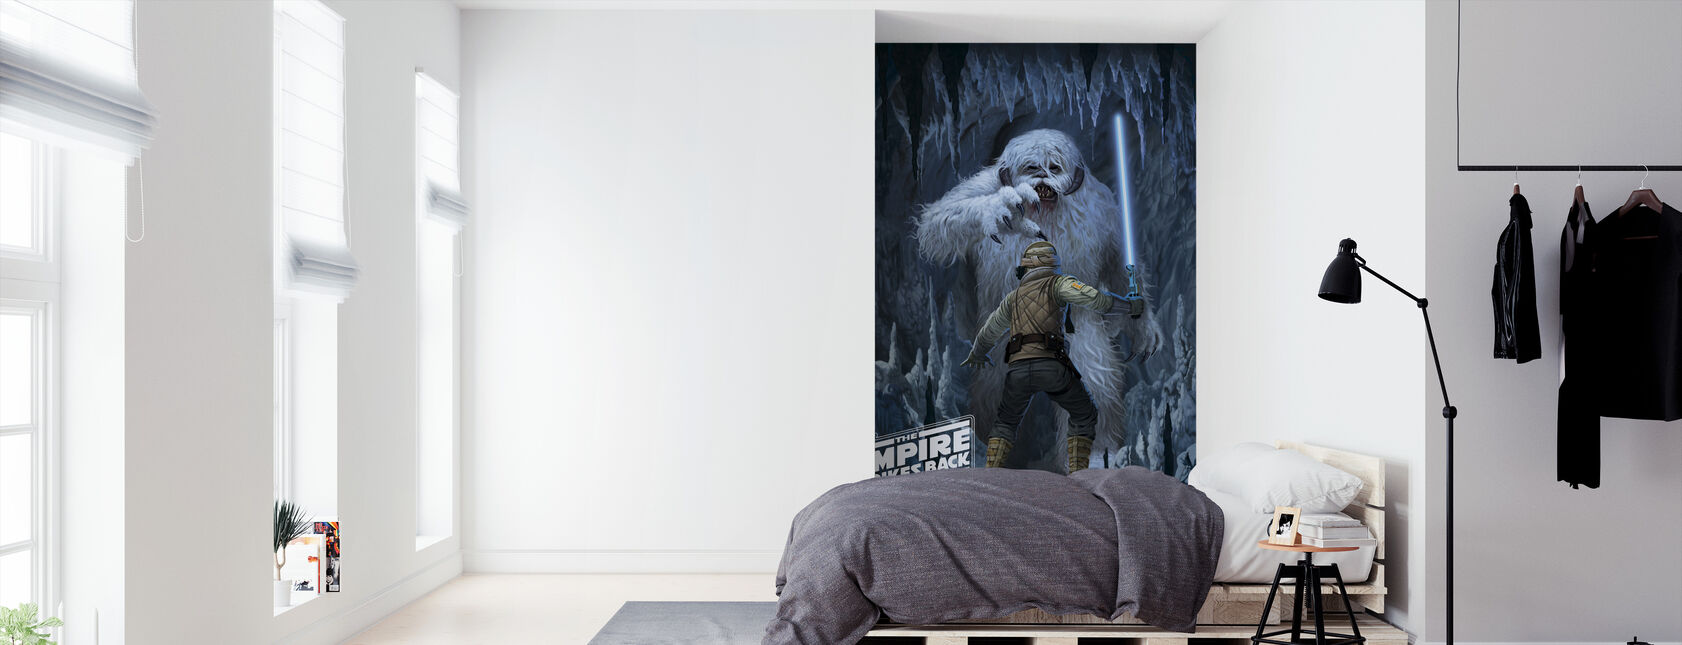 Wampa Cave - Wallpaper - Bedroom